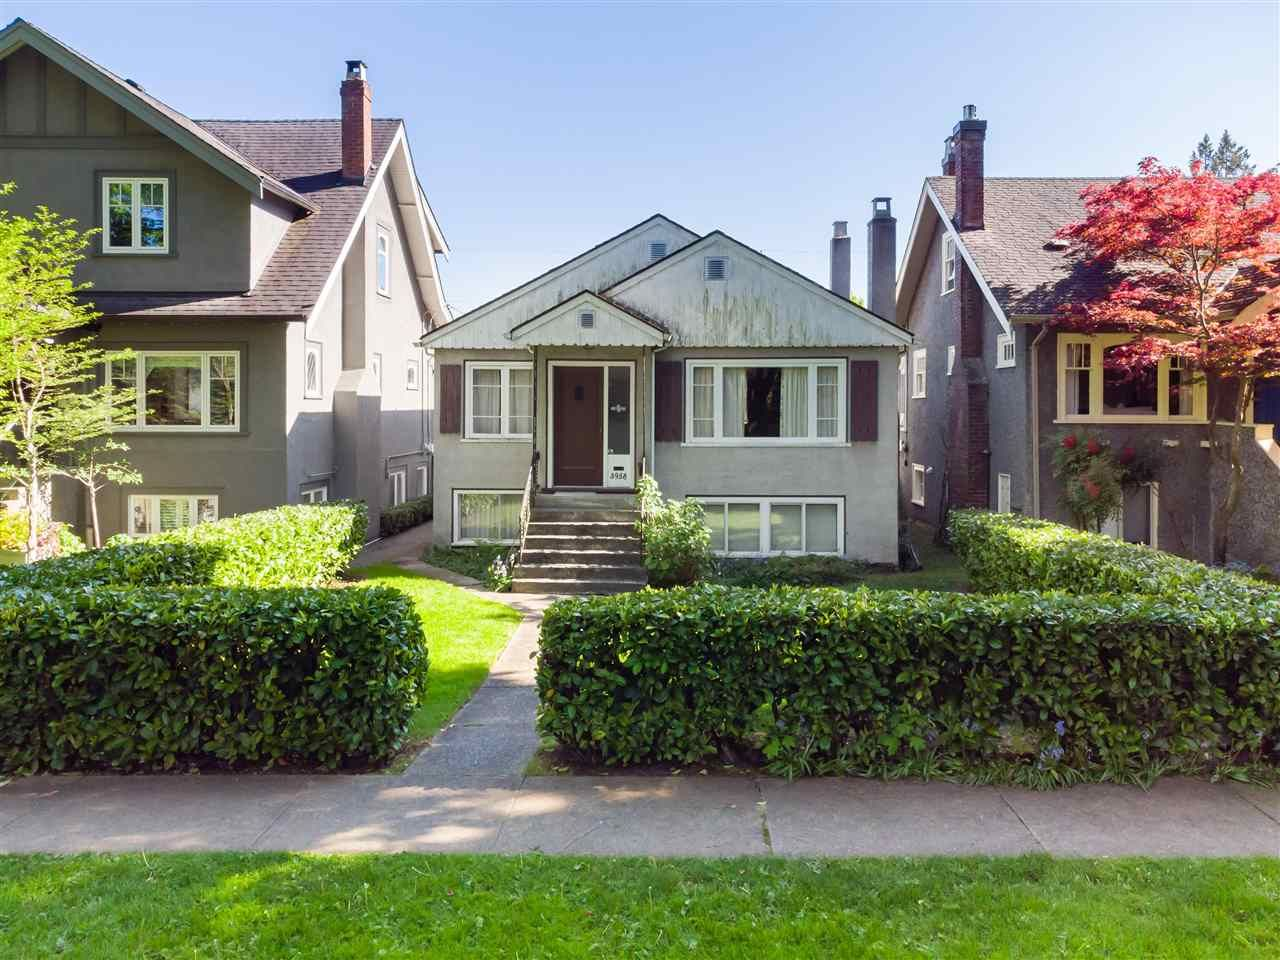 Main Photo: 3958 W 19TH Avenue in Vancouver: Dunbar House for sale (Vancouver West)  : MLS®# R2579264